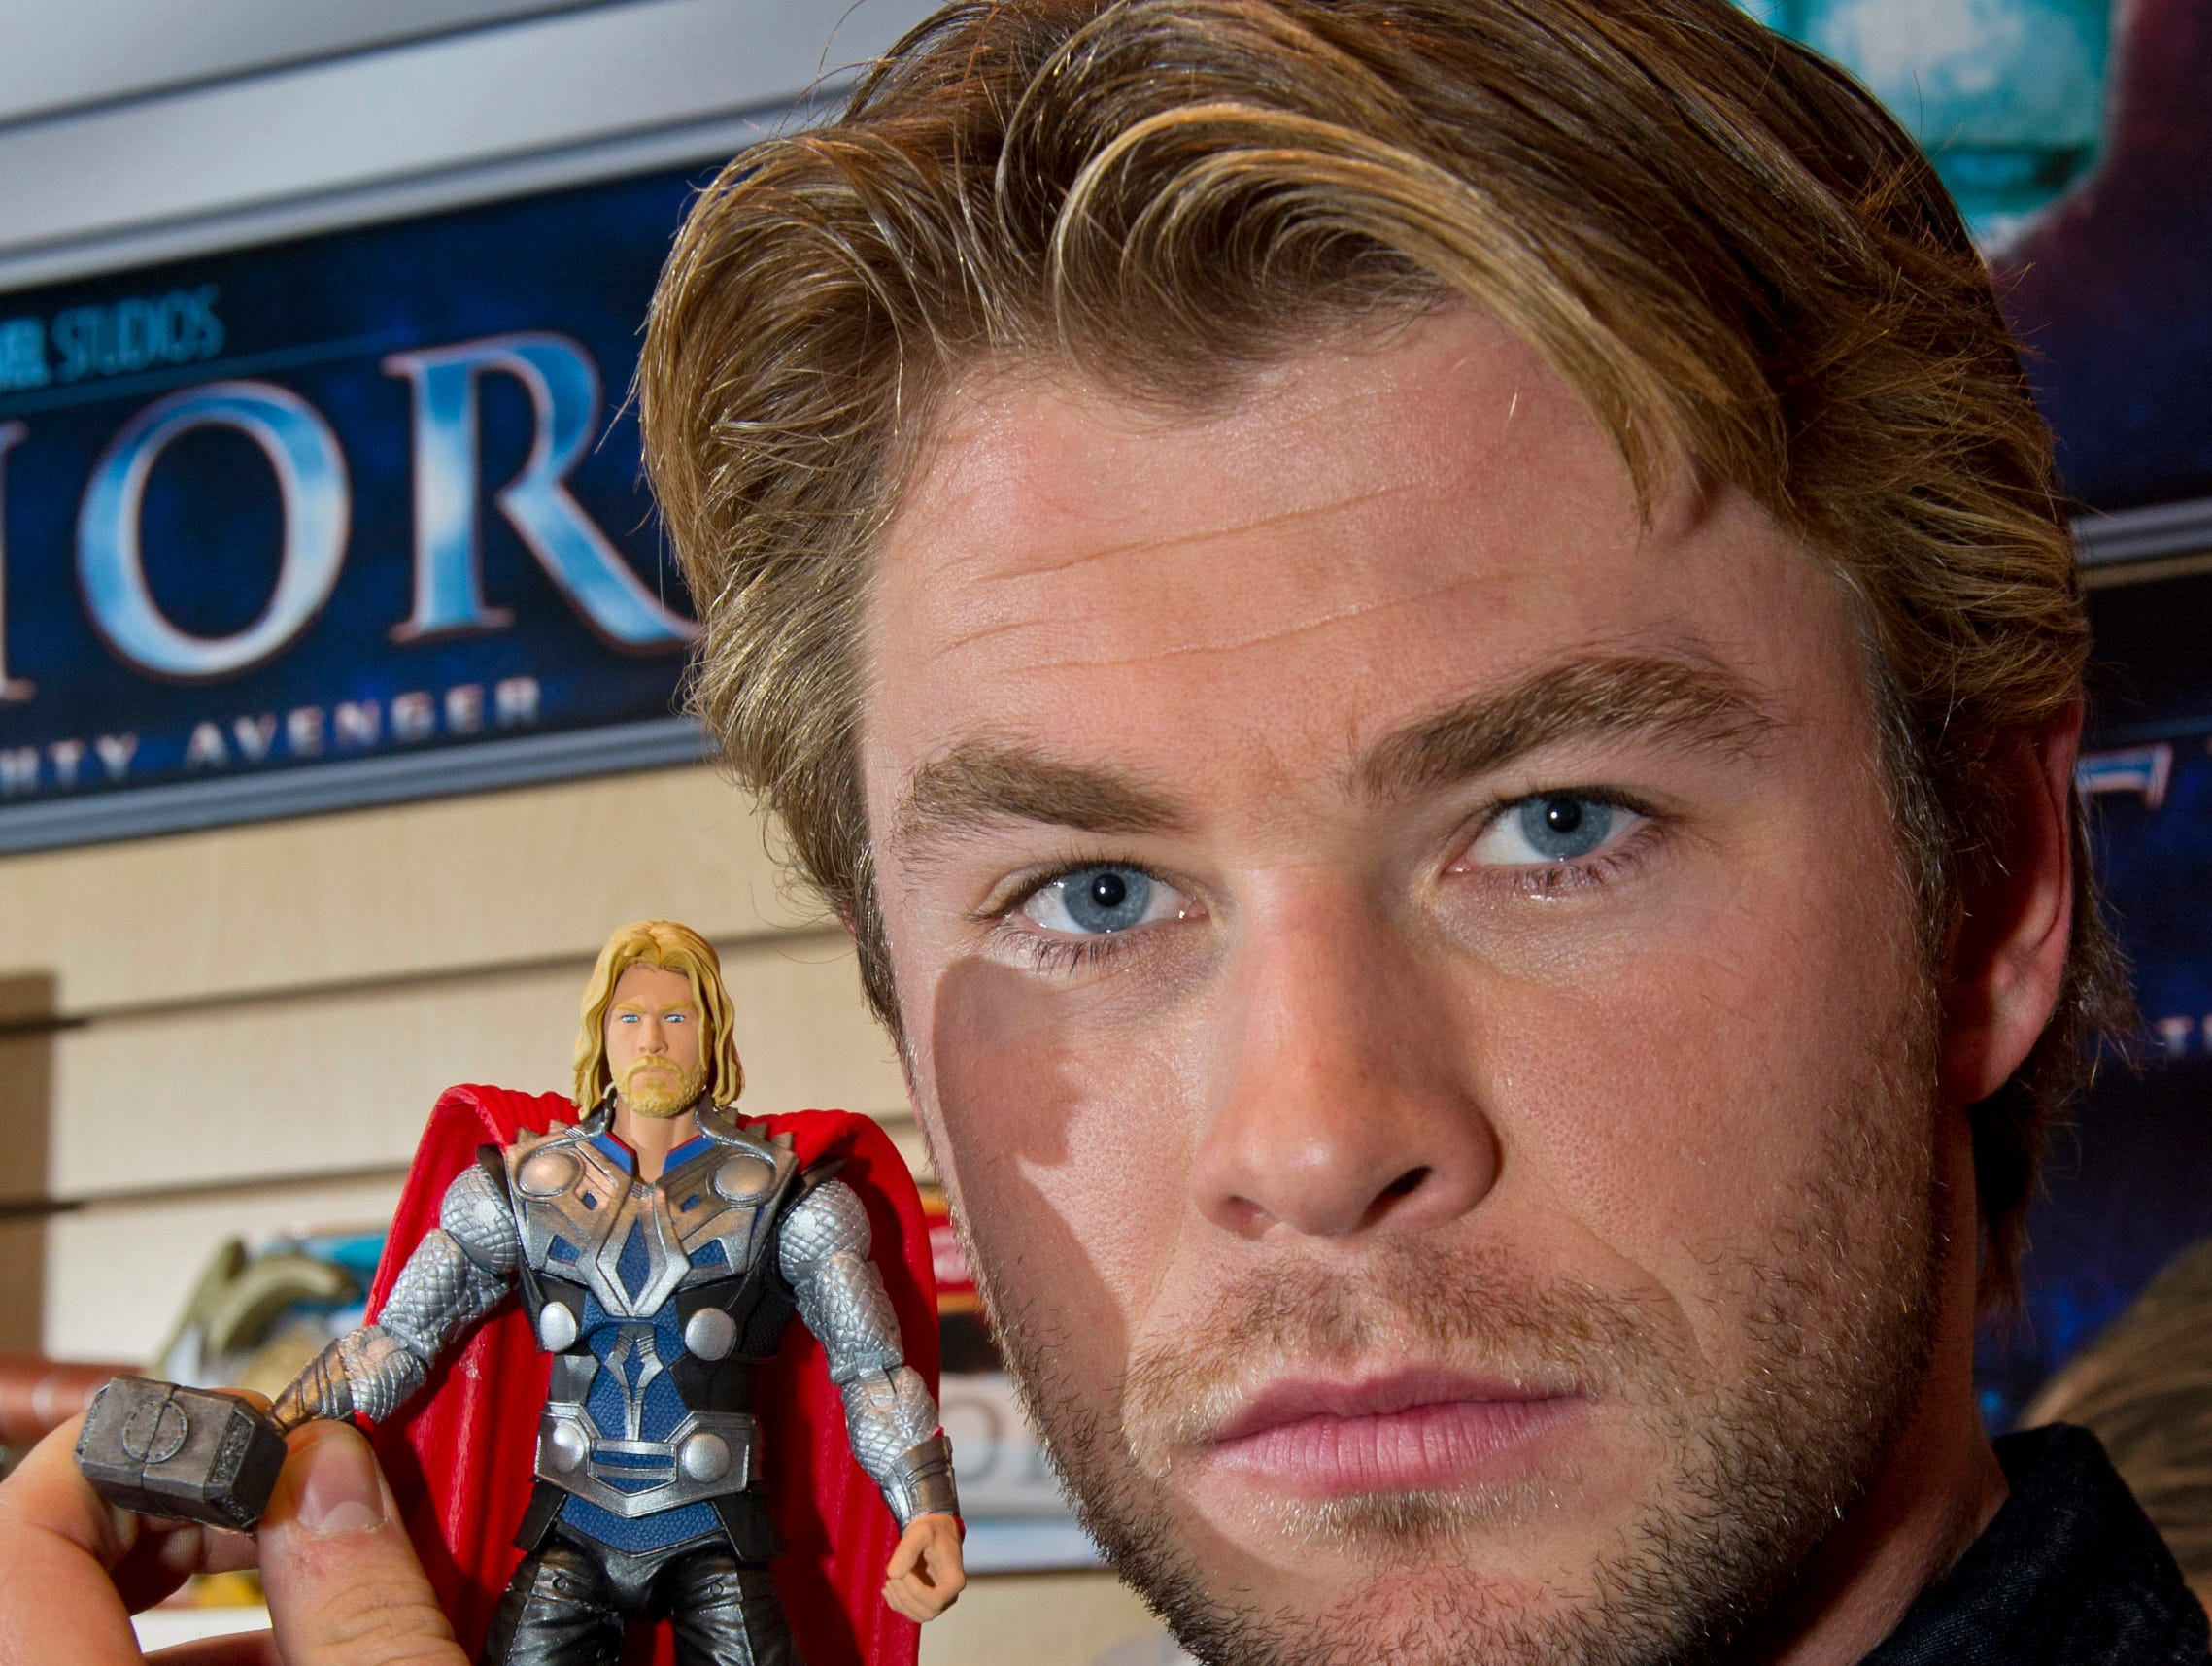 ORG XMIT: NYR108 In this photo provided by Hasbro, Chris Hemsworth, who plays ìThorî in the upcoming film, holds a 6-inch action figure of his likeness, while visiting Hasbro's American International Toy Fair showroom in New York, Tuesday, Feb 15, 2011. (AP Photo/Hasbro, Ray Stubblebine) NO SALES